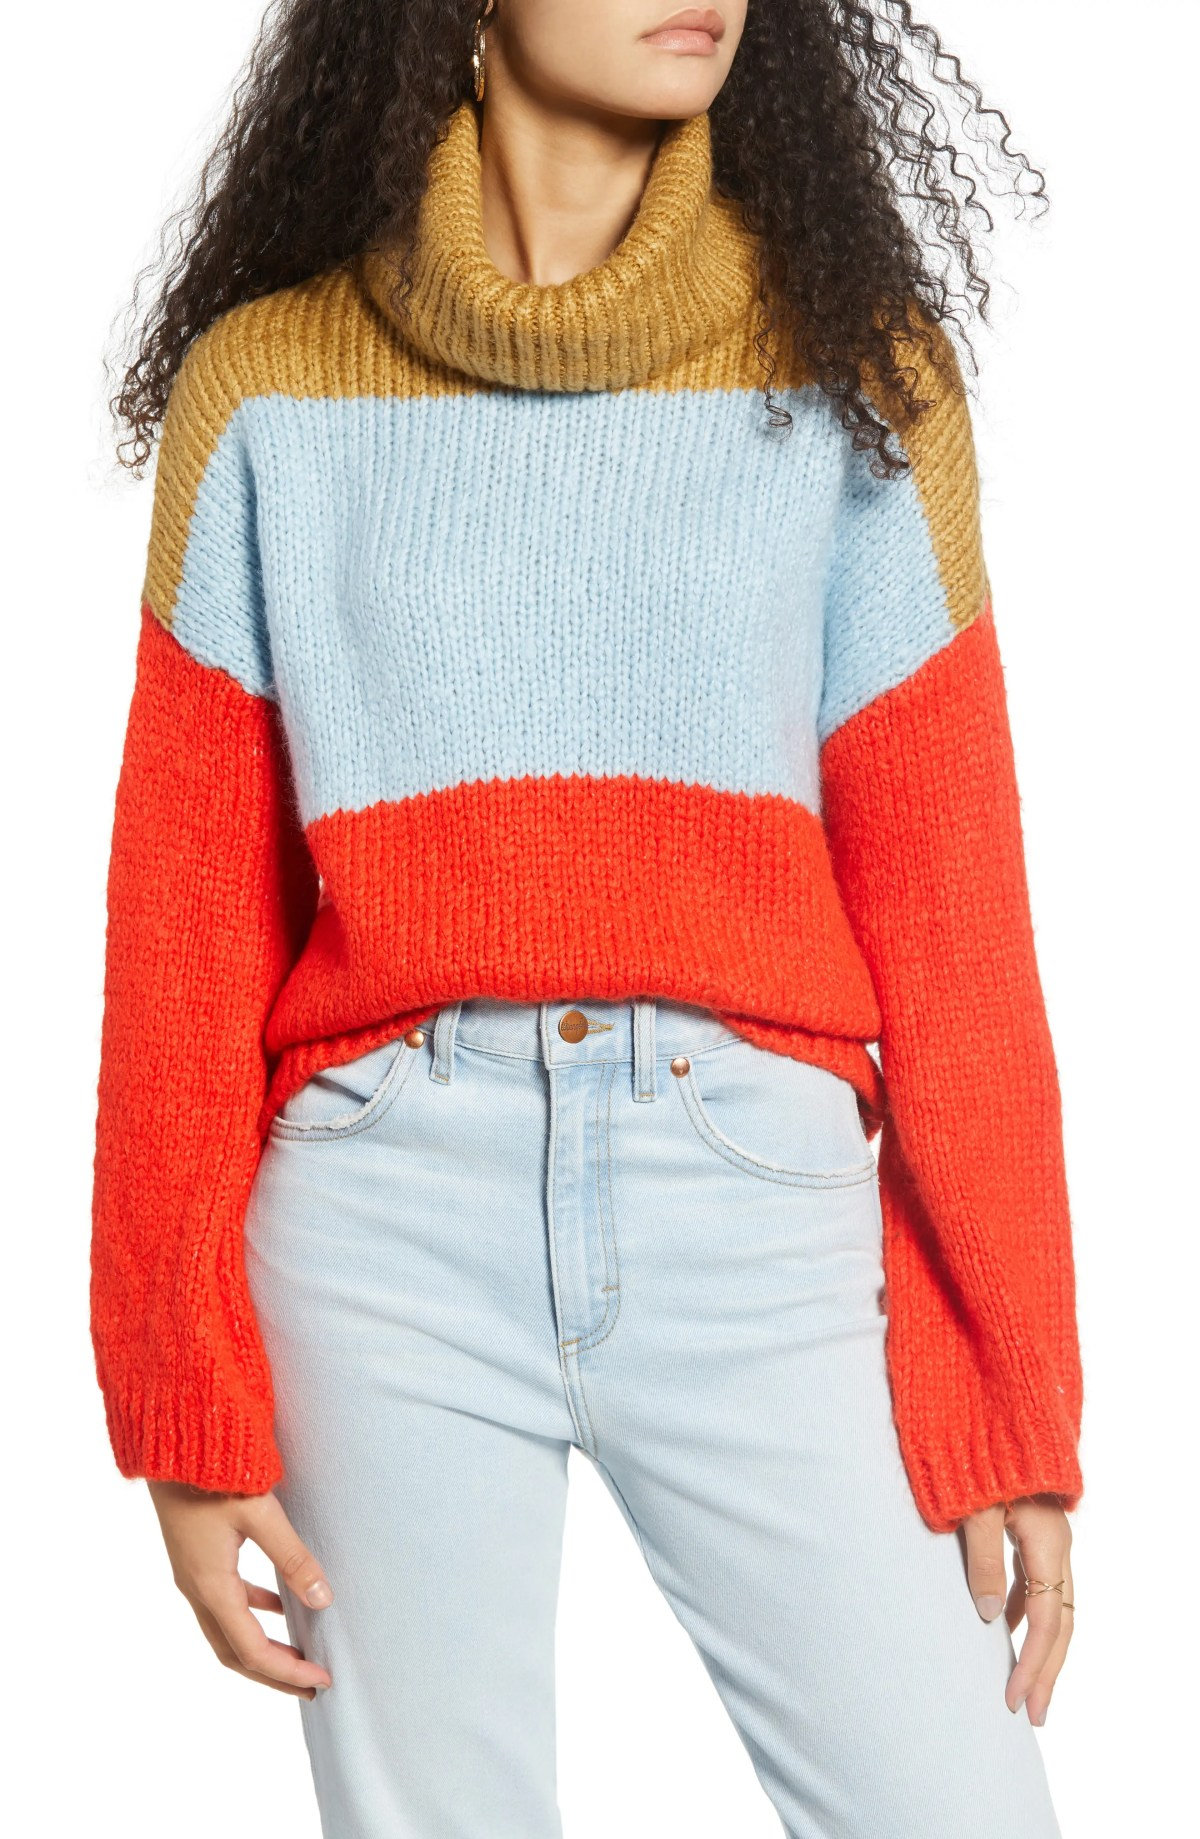 WOVEN HEART Chunky Colorblock Turtleneck Sweater, Main, color, MULTI